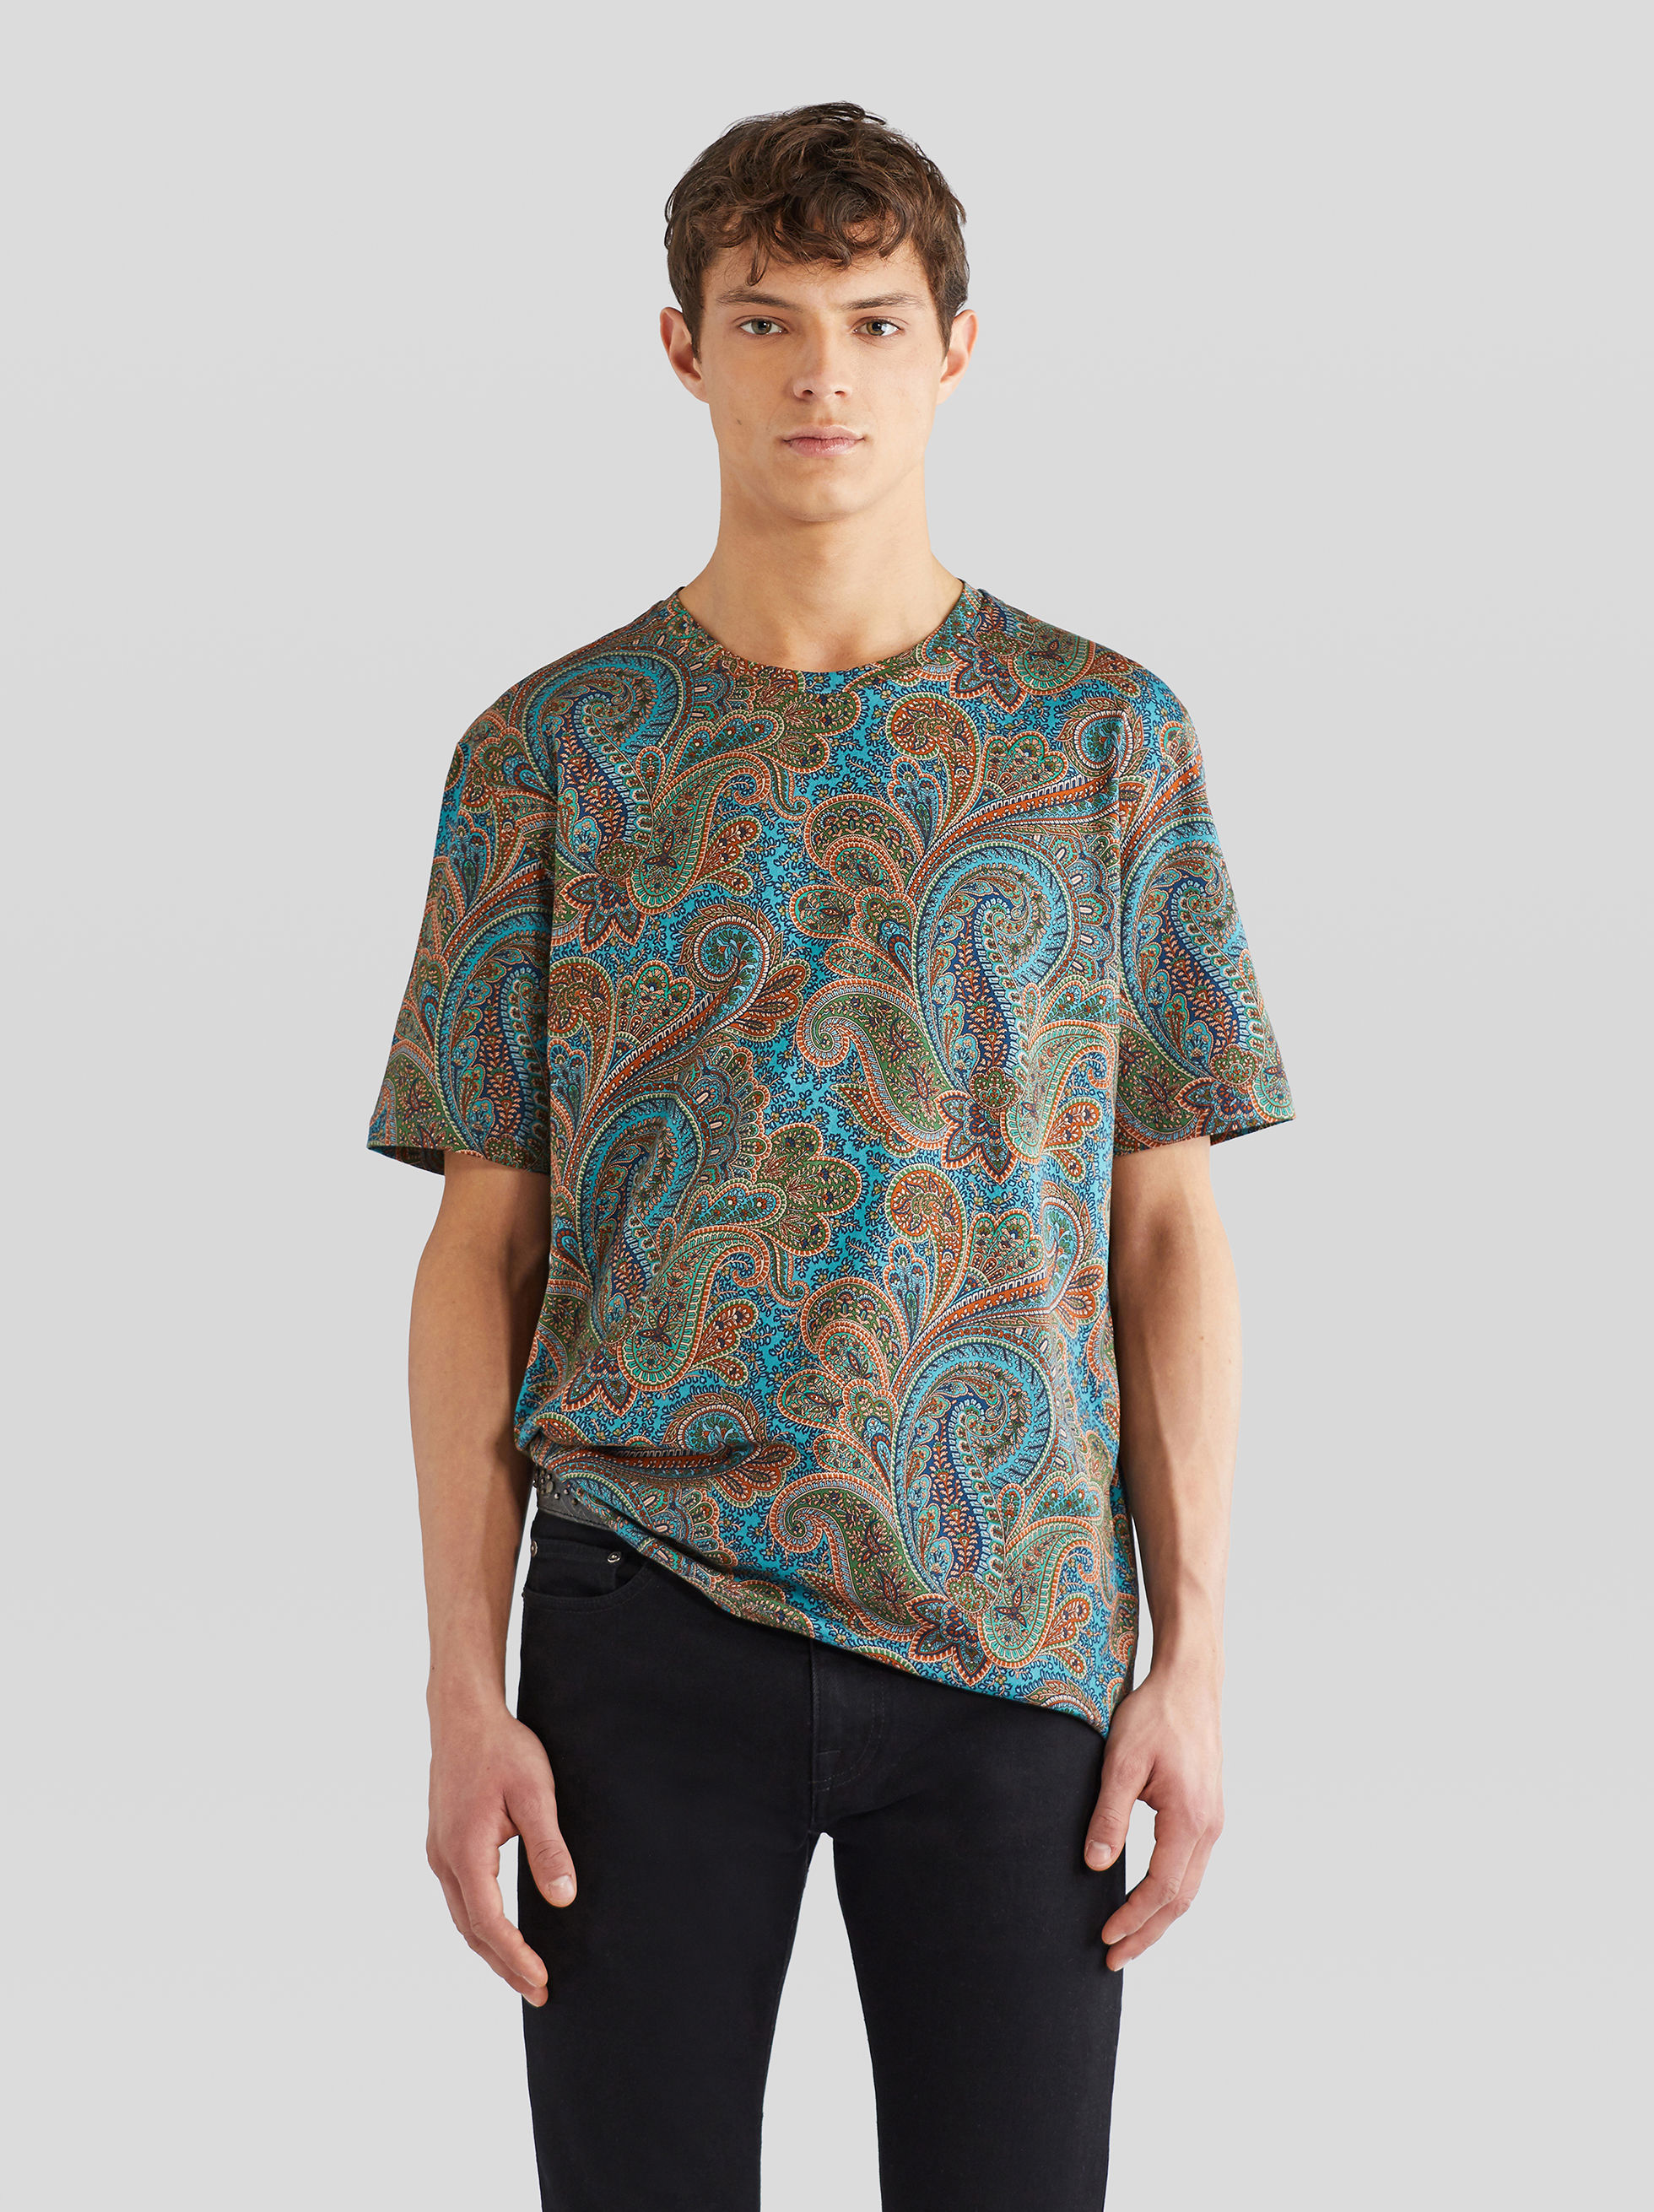 FLORAL PAISLEY PRINT COTTON T-SHIRT